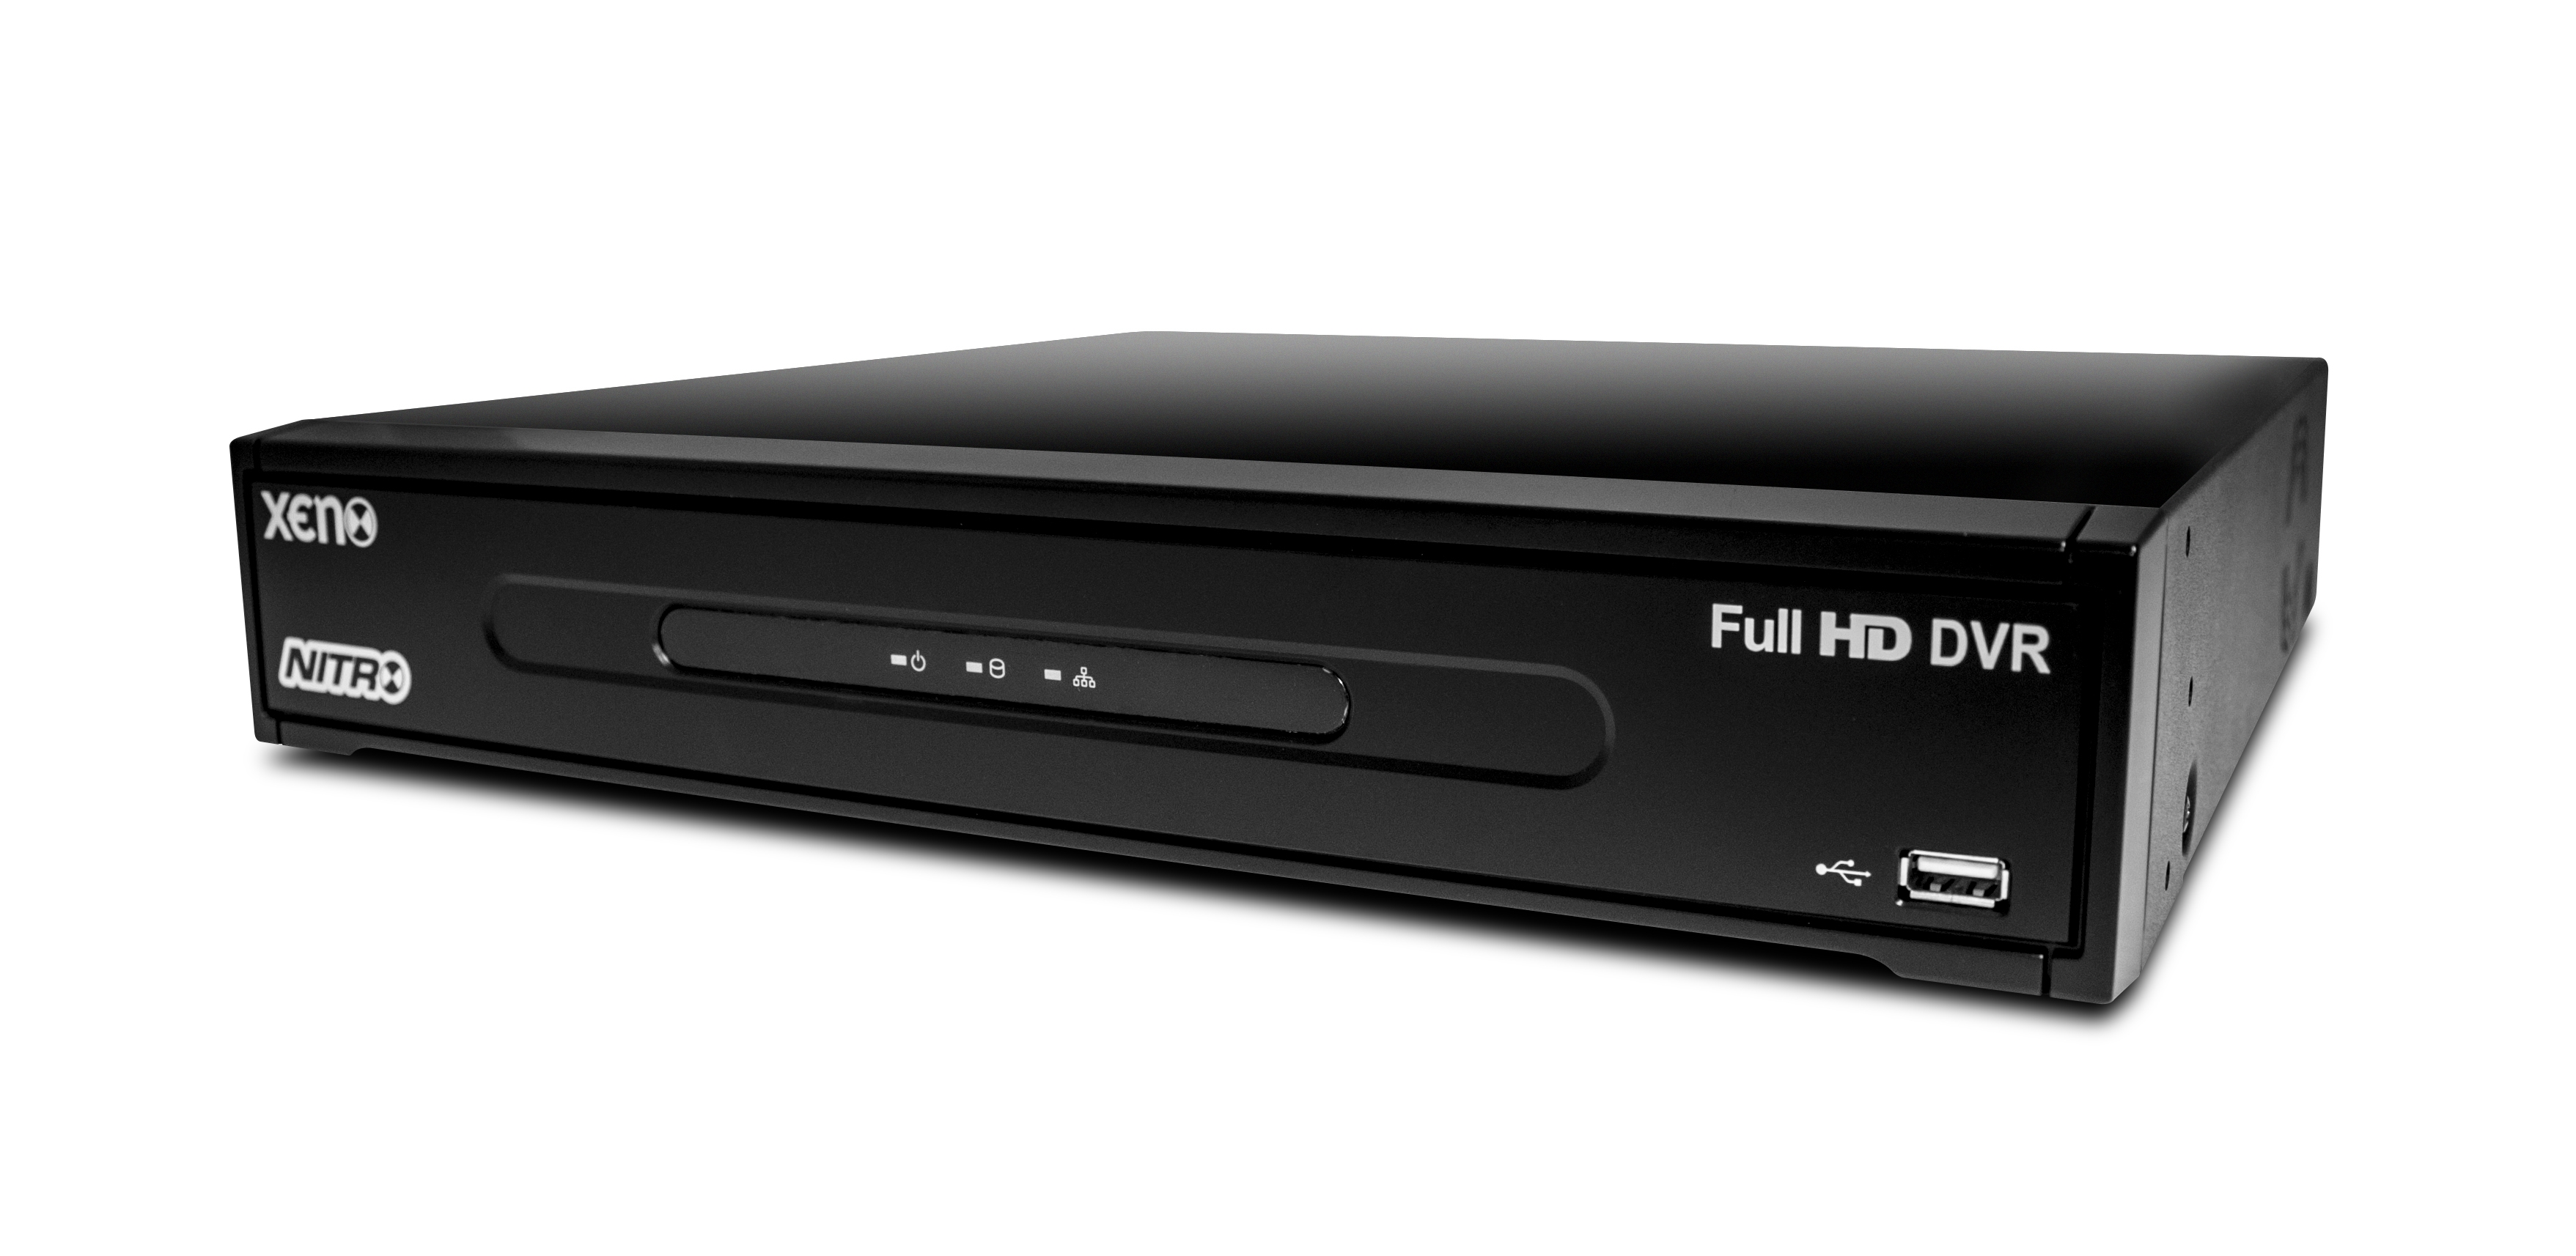 16 Ch. Full HD real-time analogueue DVR - 8TB